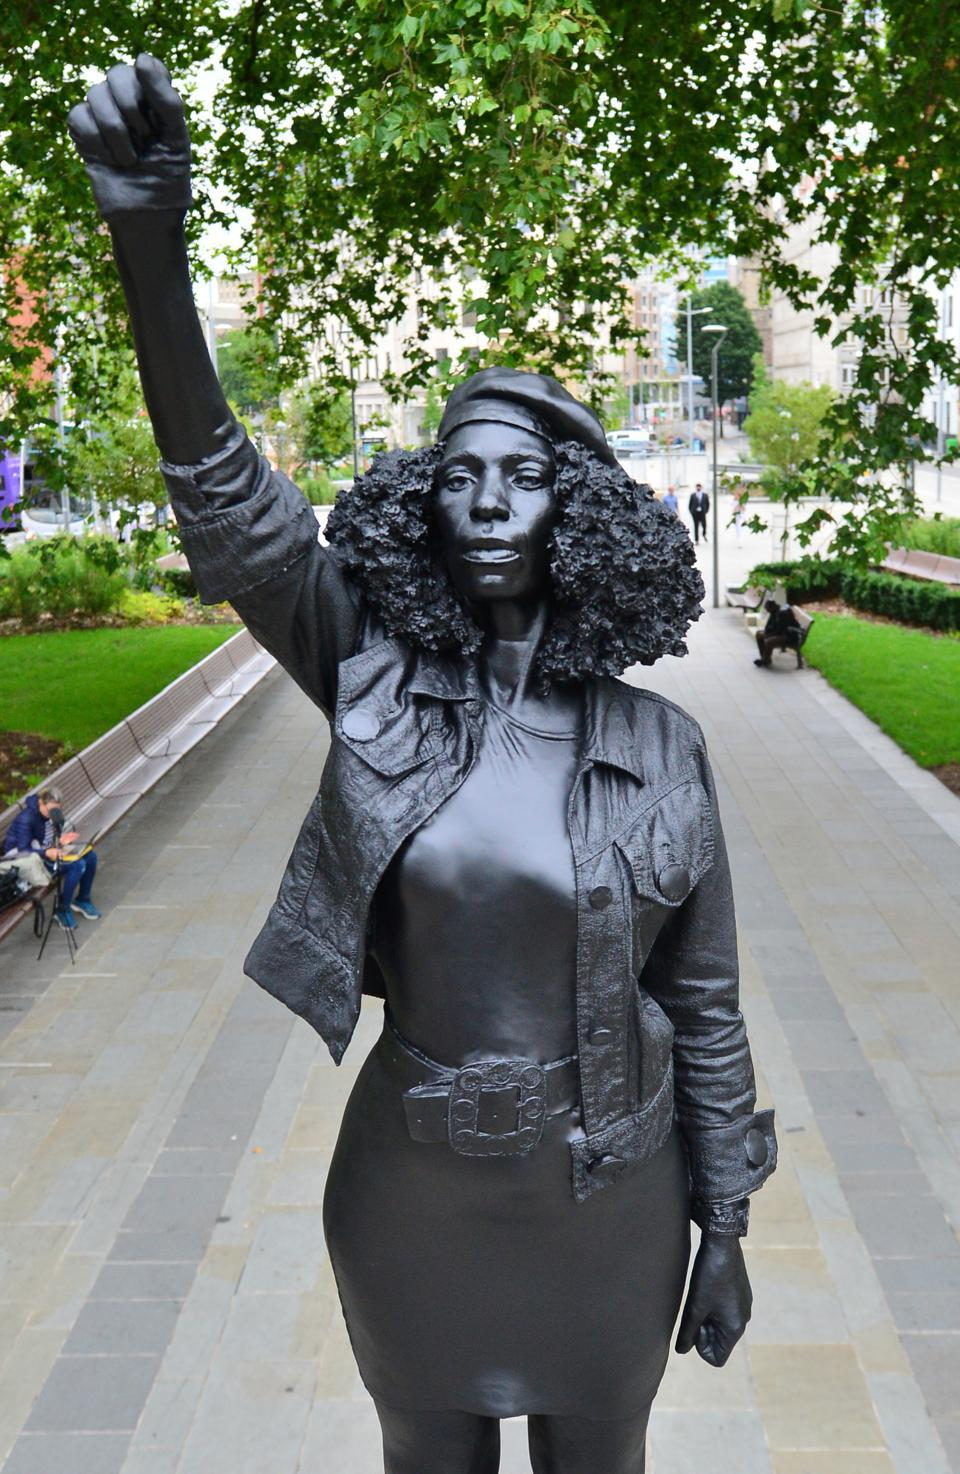 statue of anti-racism protester replacing that of a slave trader